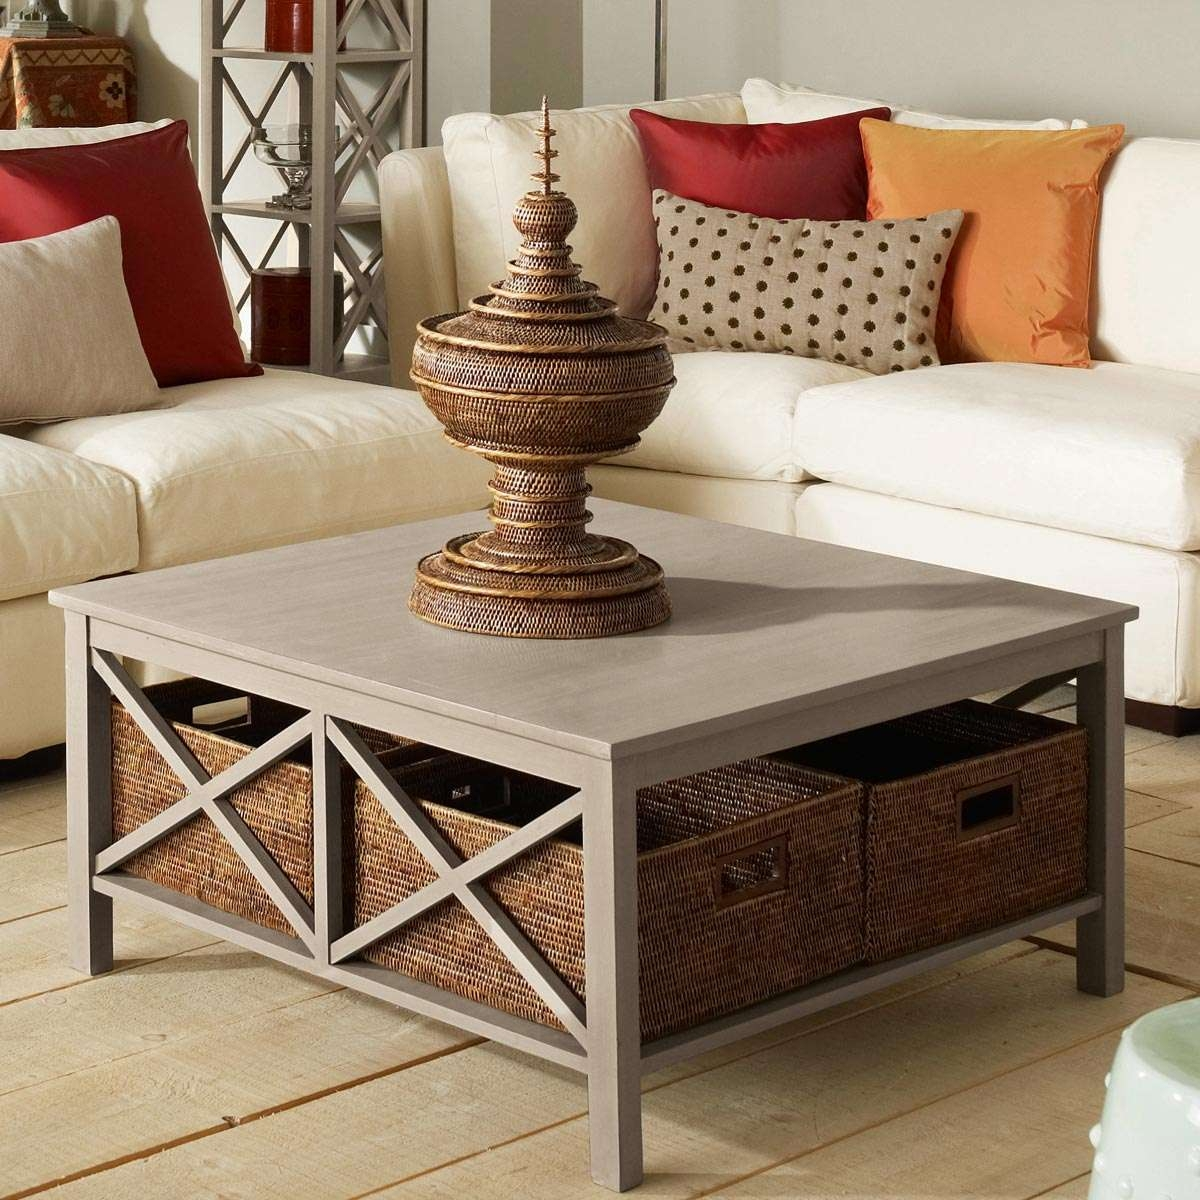 Square Coffee Table With Storage (View 18 of 20)